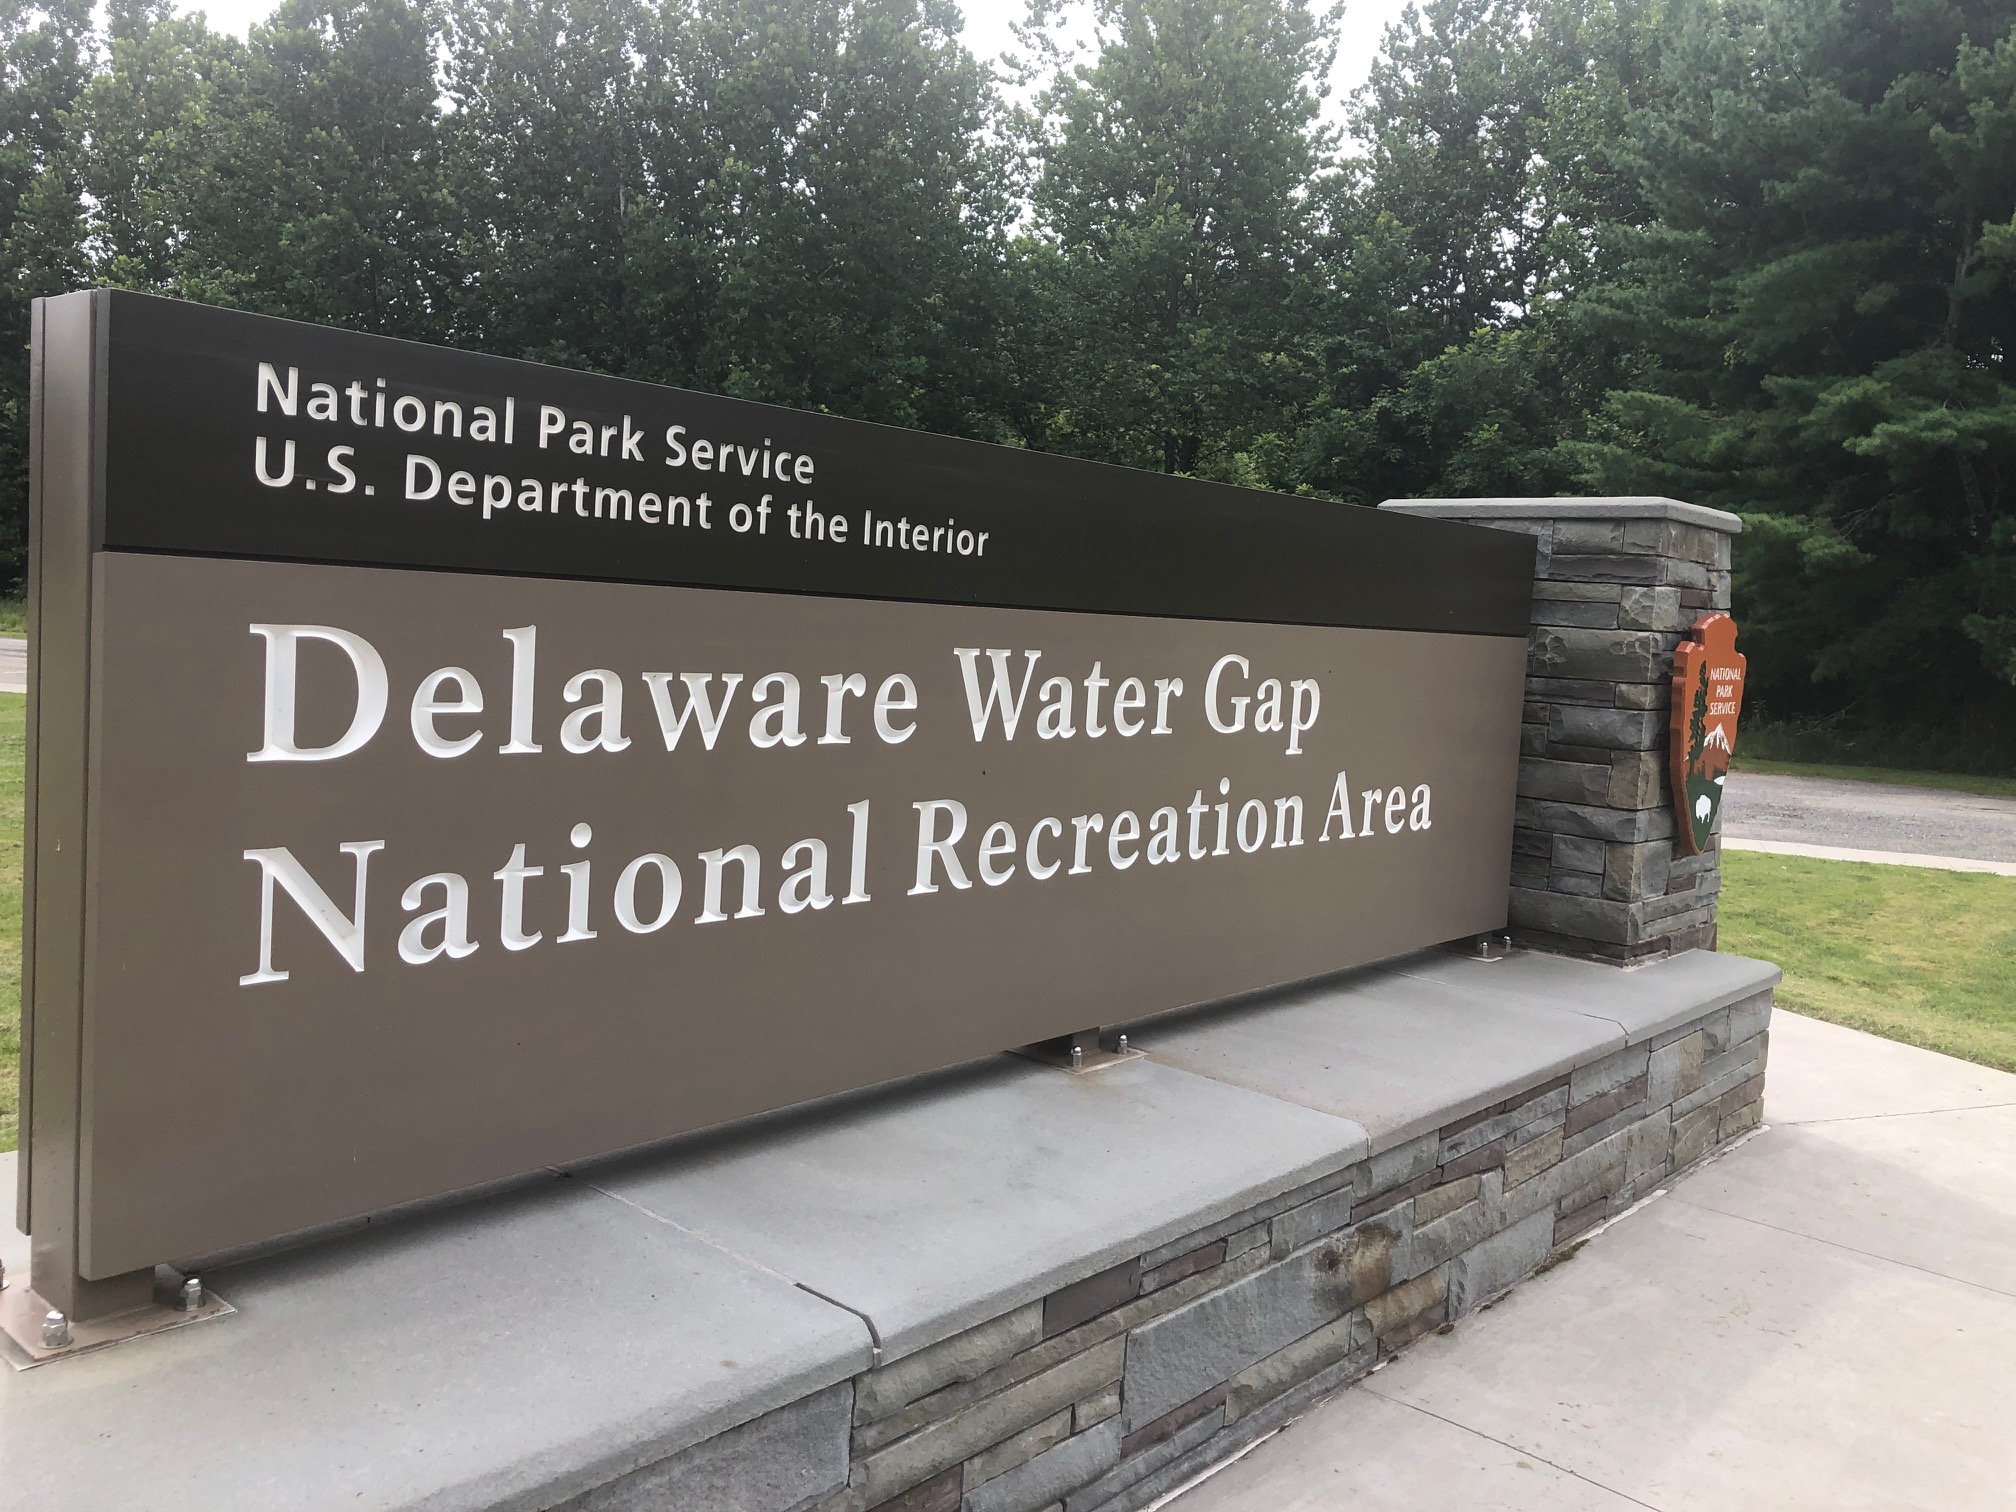 Plan pushed to make Delaware Water Gap Recreation Area a national park